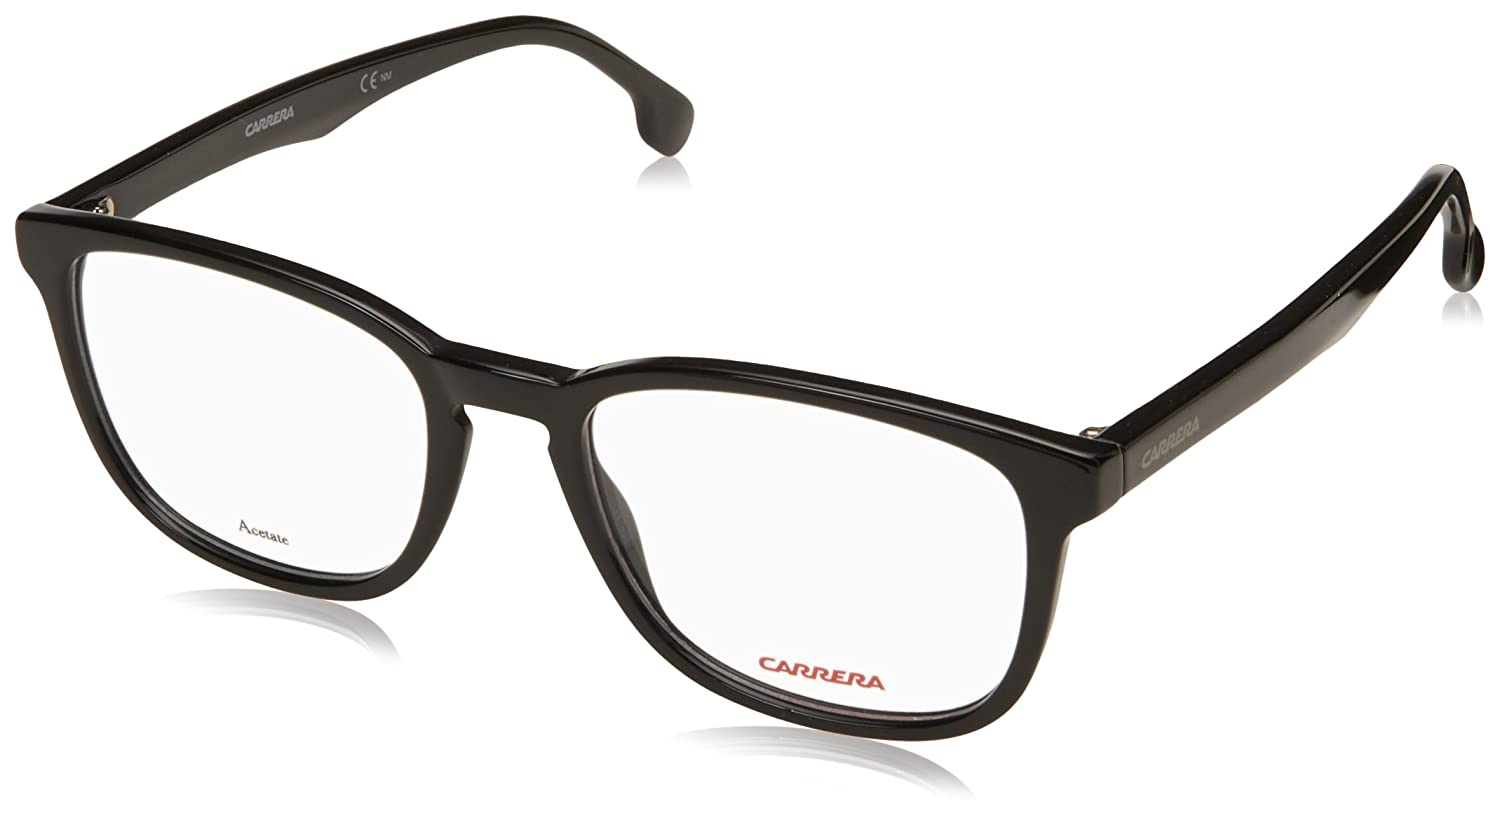 11cf1bbad946 Carrera 148/V 807 5219 Full Rim Oval Spectacle Frame (Black): Amazon.in:  Clothing & Accessories